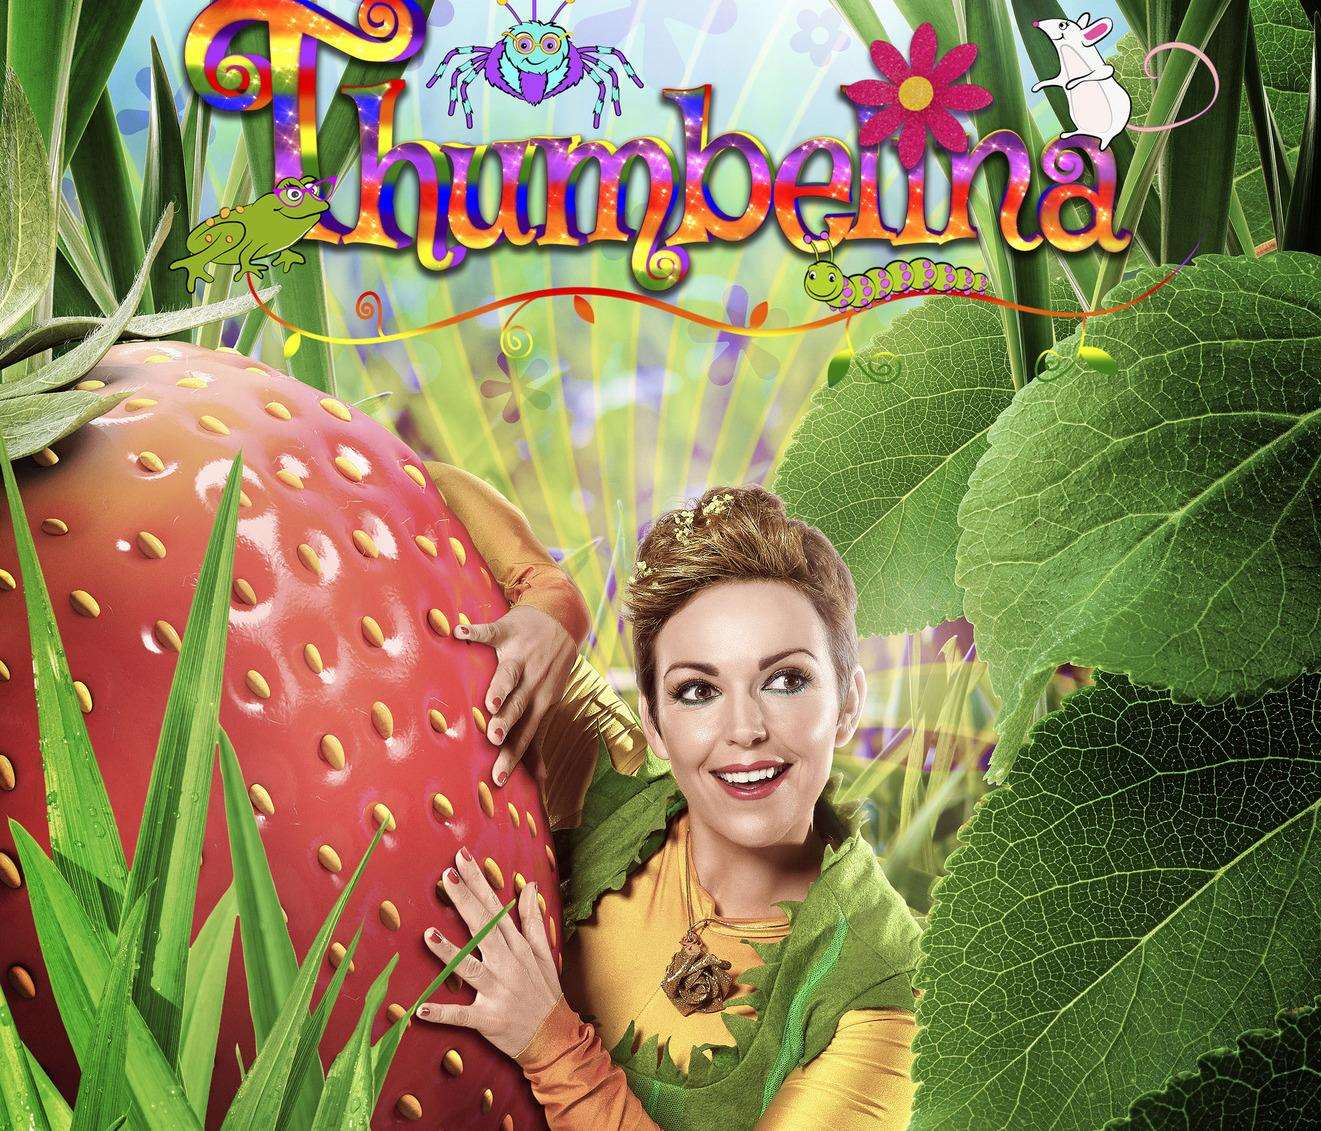 Thumbelina is coming to cinemas for the first time